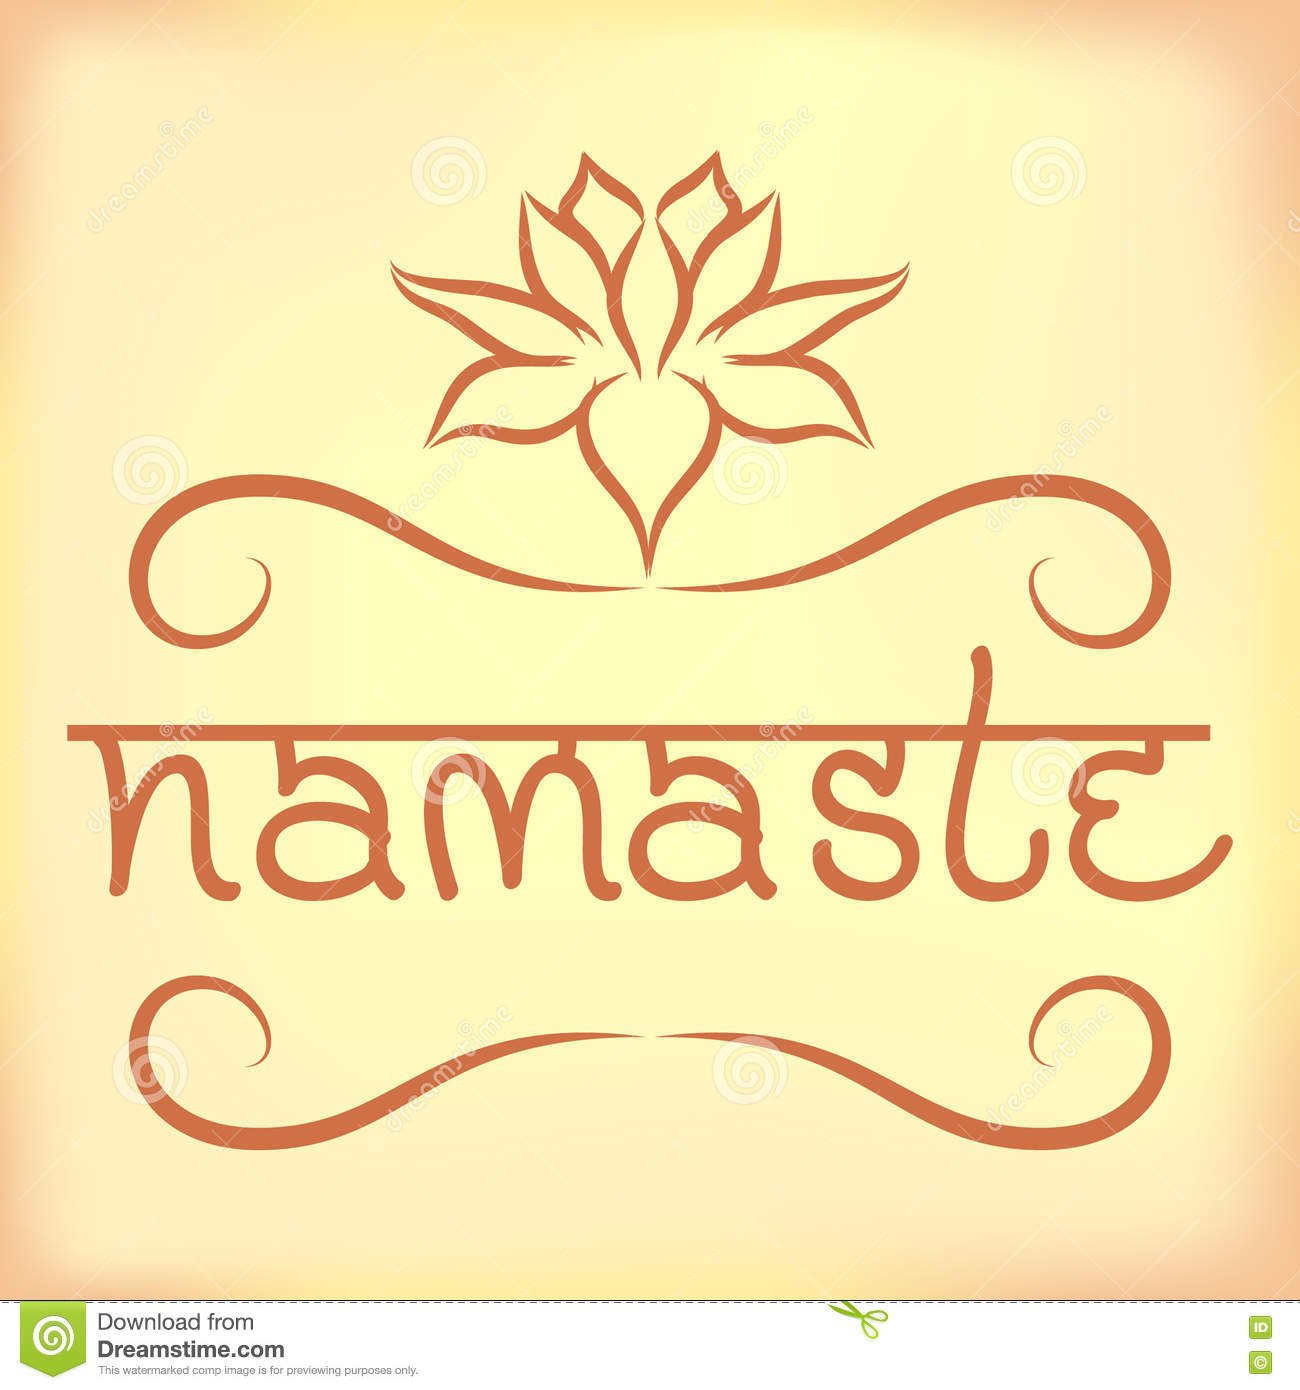 Image result for namaste images free